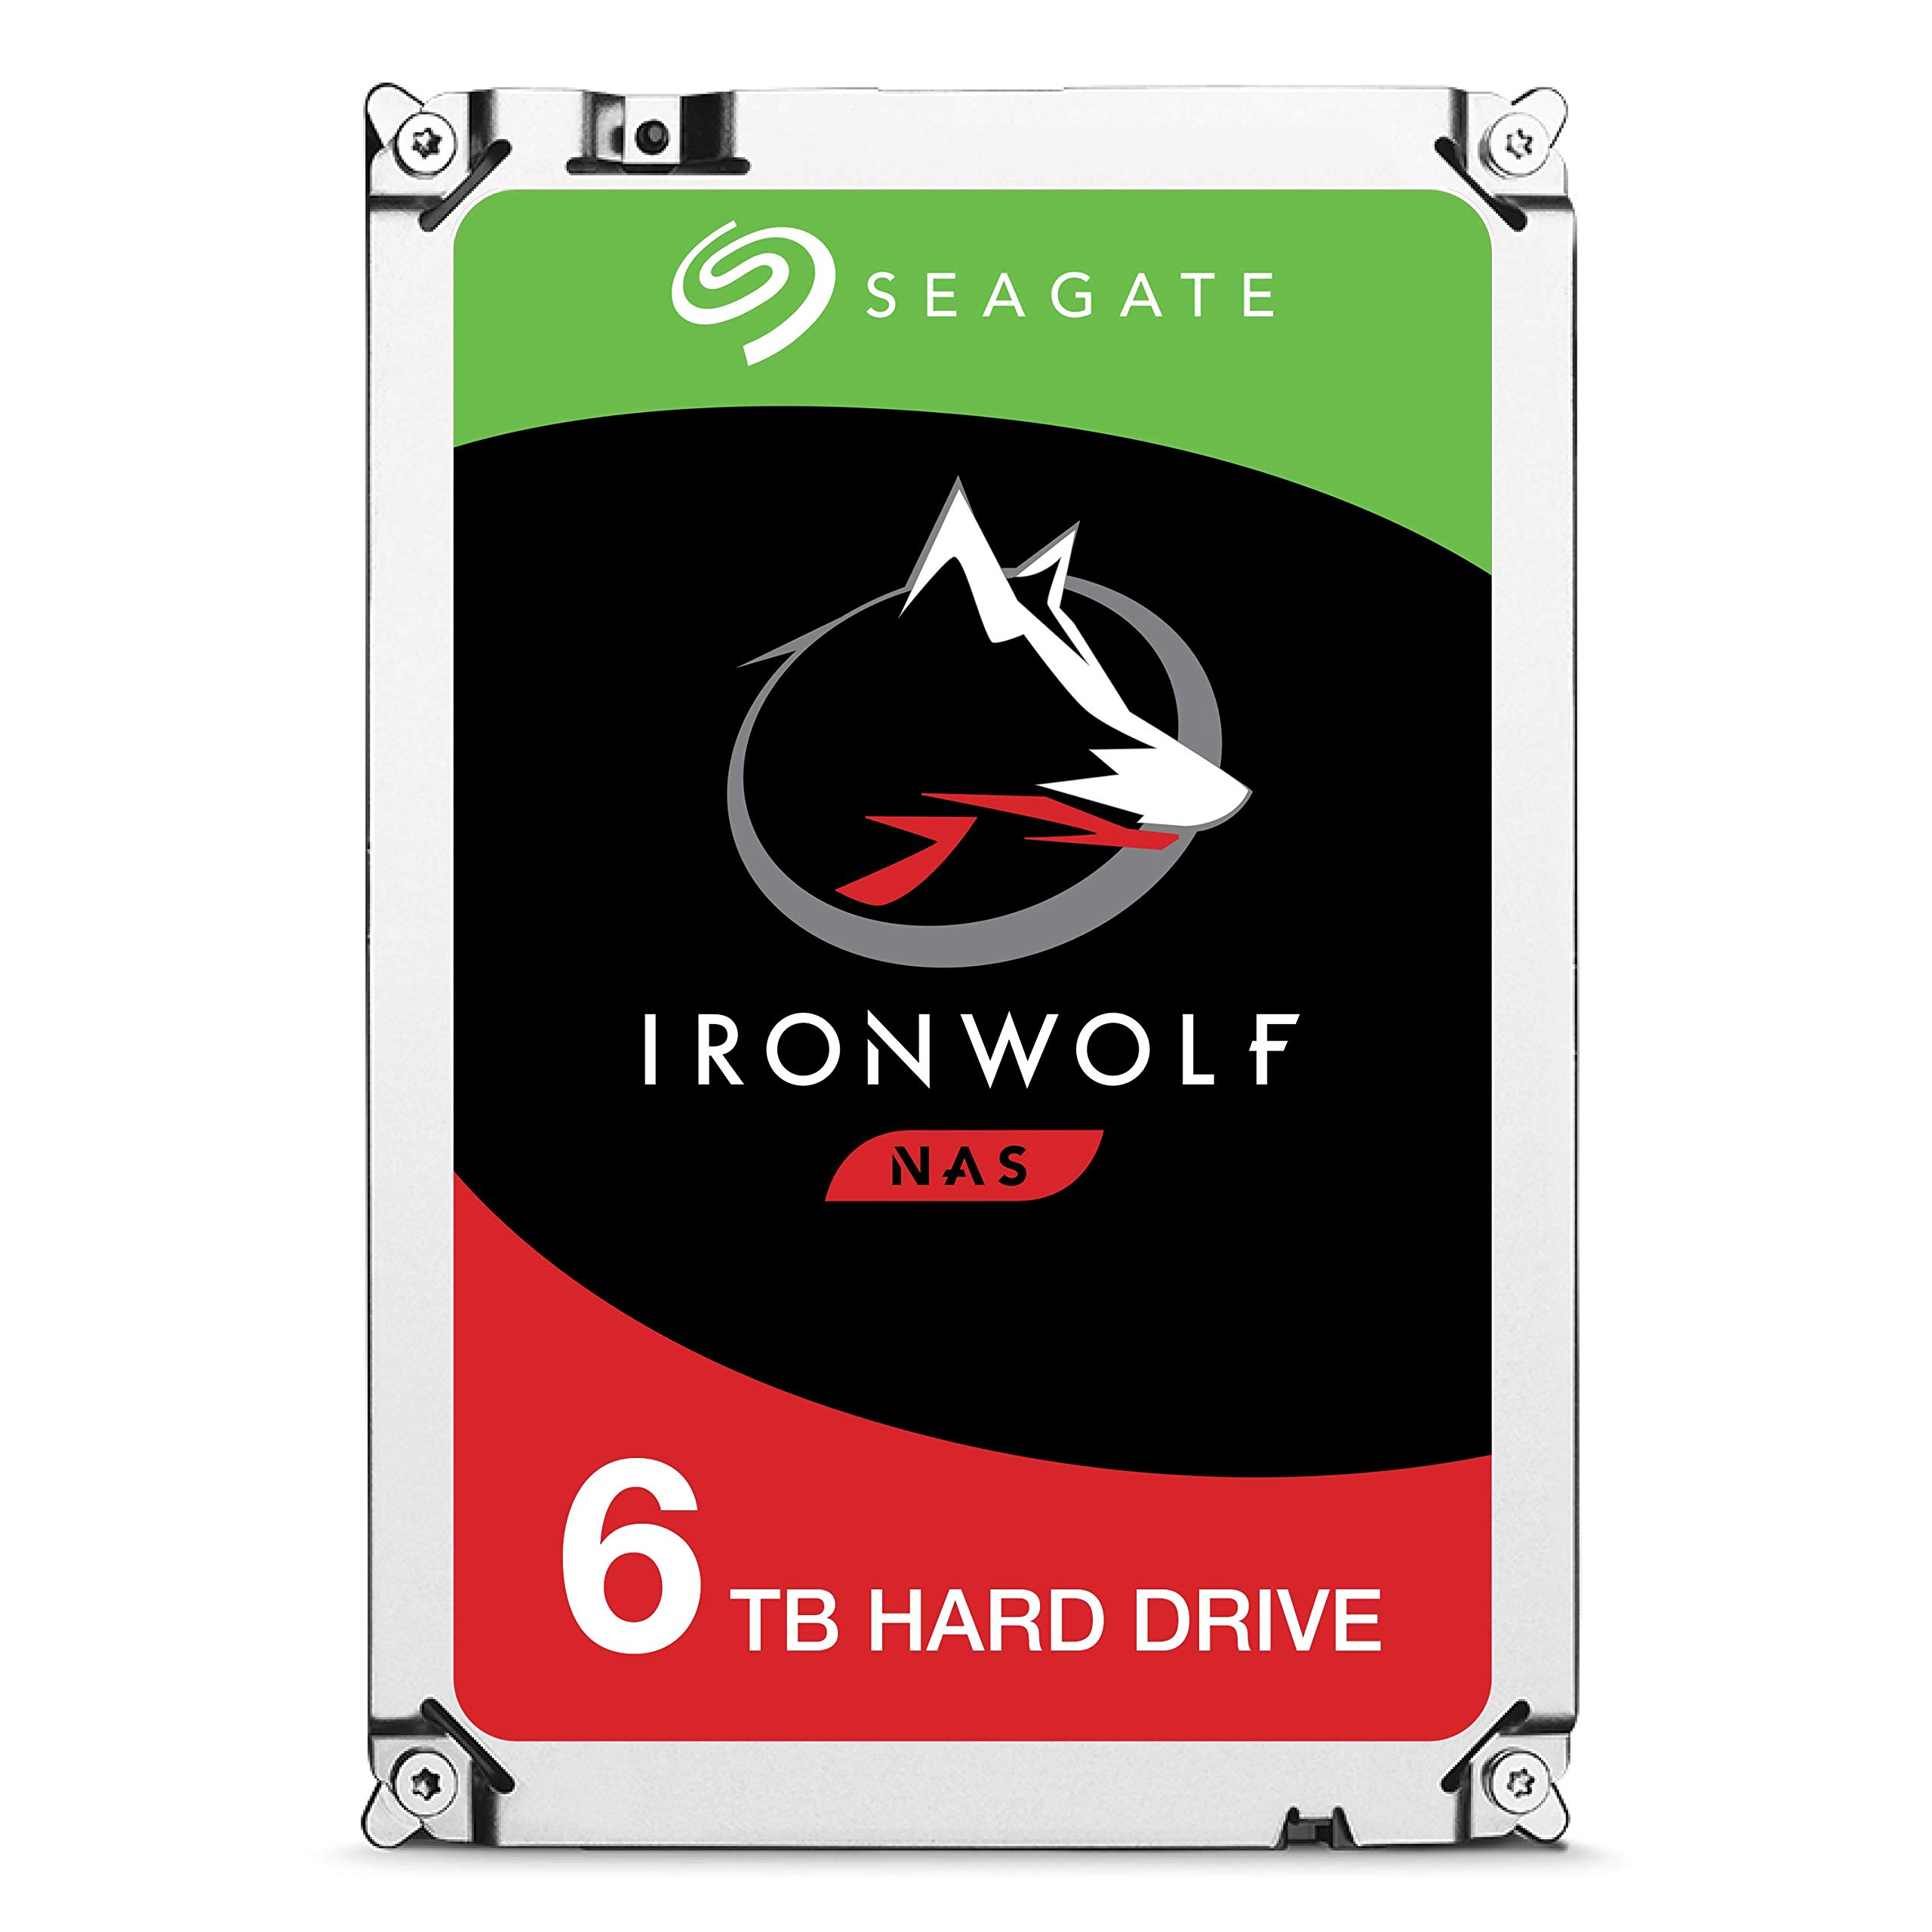 Seagate Ironwolf 6 TB NAS RAID Internal Hard Drive - 7,200 RPM SATA 6 Gb/s 3.5-inch - Frustration Free Packaging  (ST6000VN0033) by Seagate (Image #1)